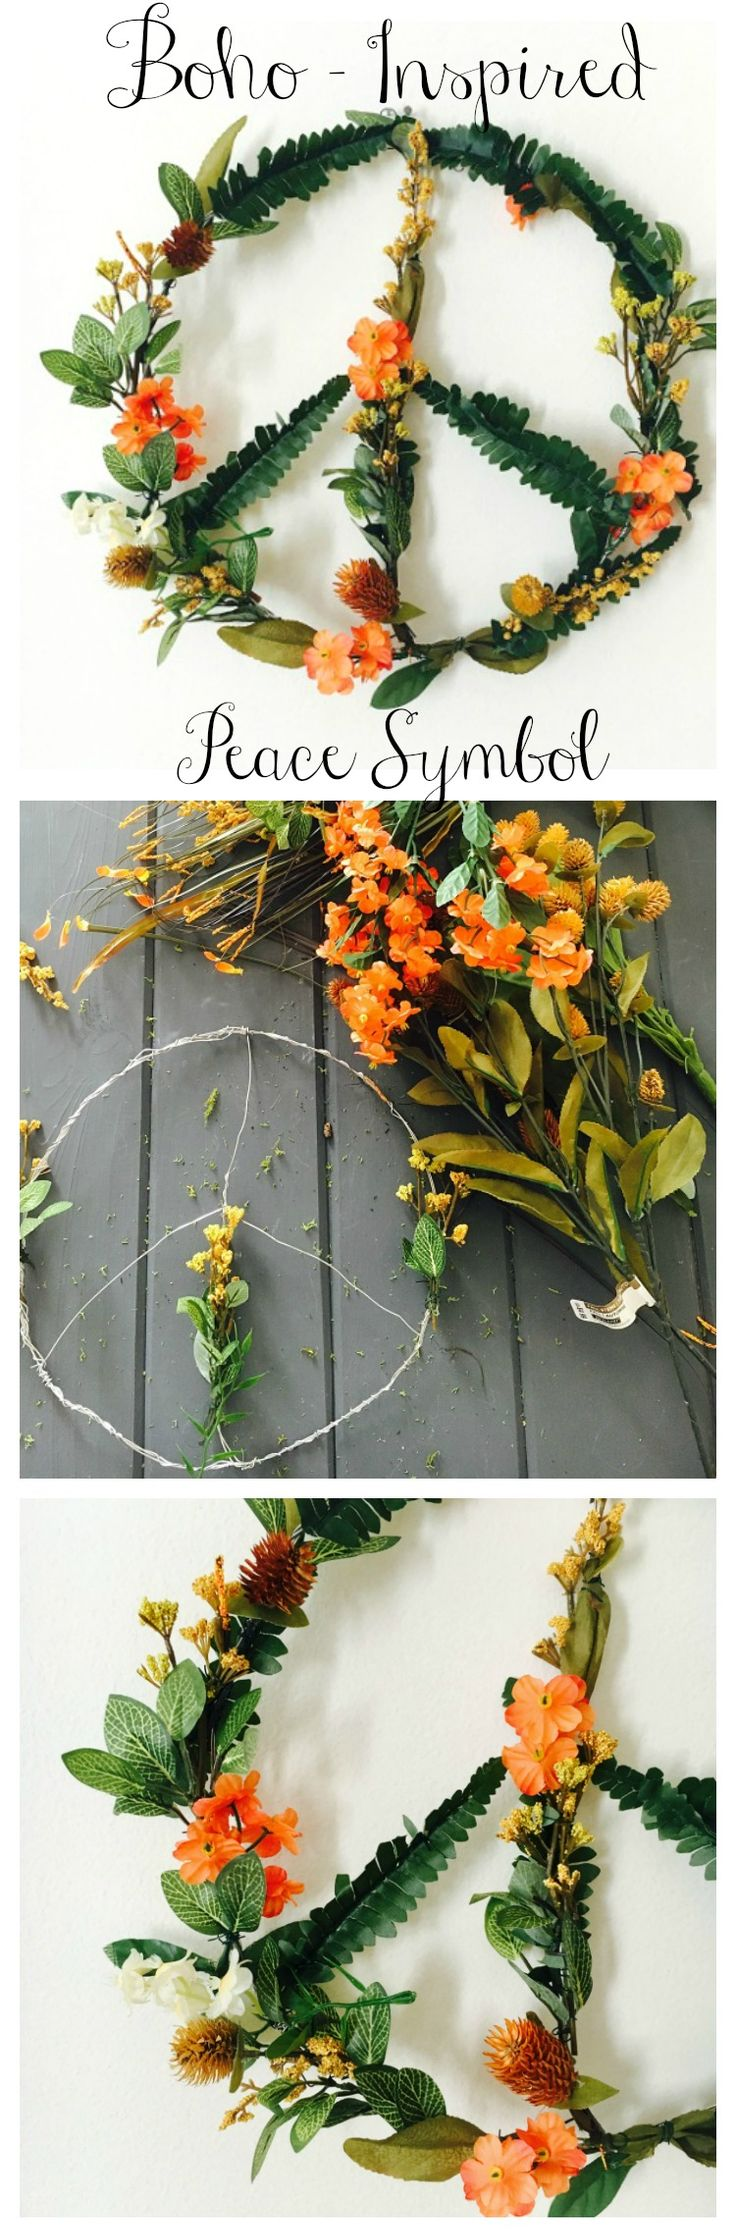 Boho Inspired Flower Peace Symbol. Easy-to-follow craft instructions on the blog. Happy crafting!! #crafty #diy #flowers #peace